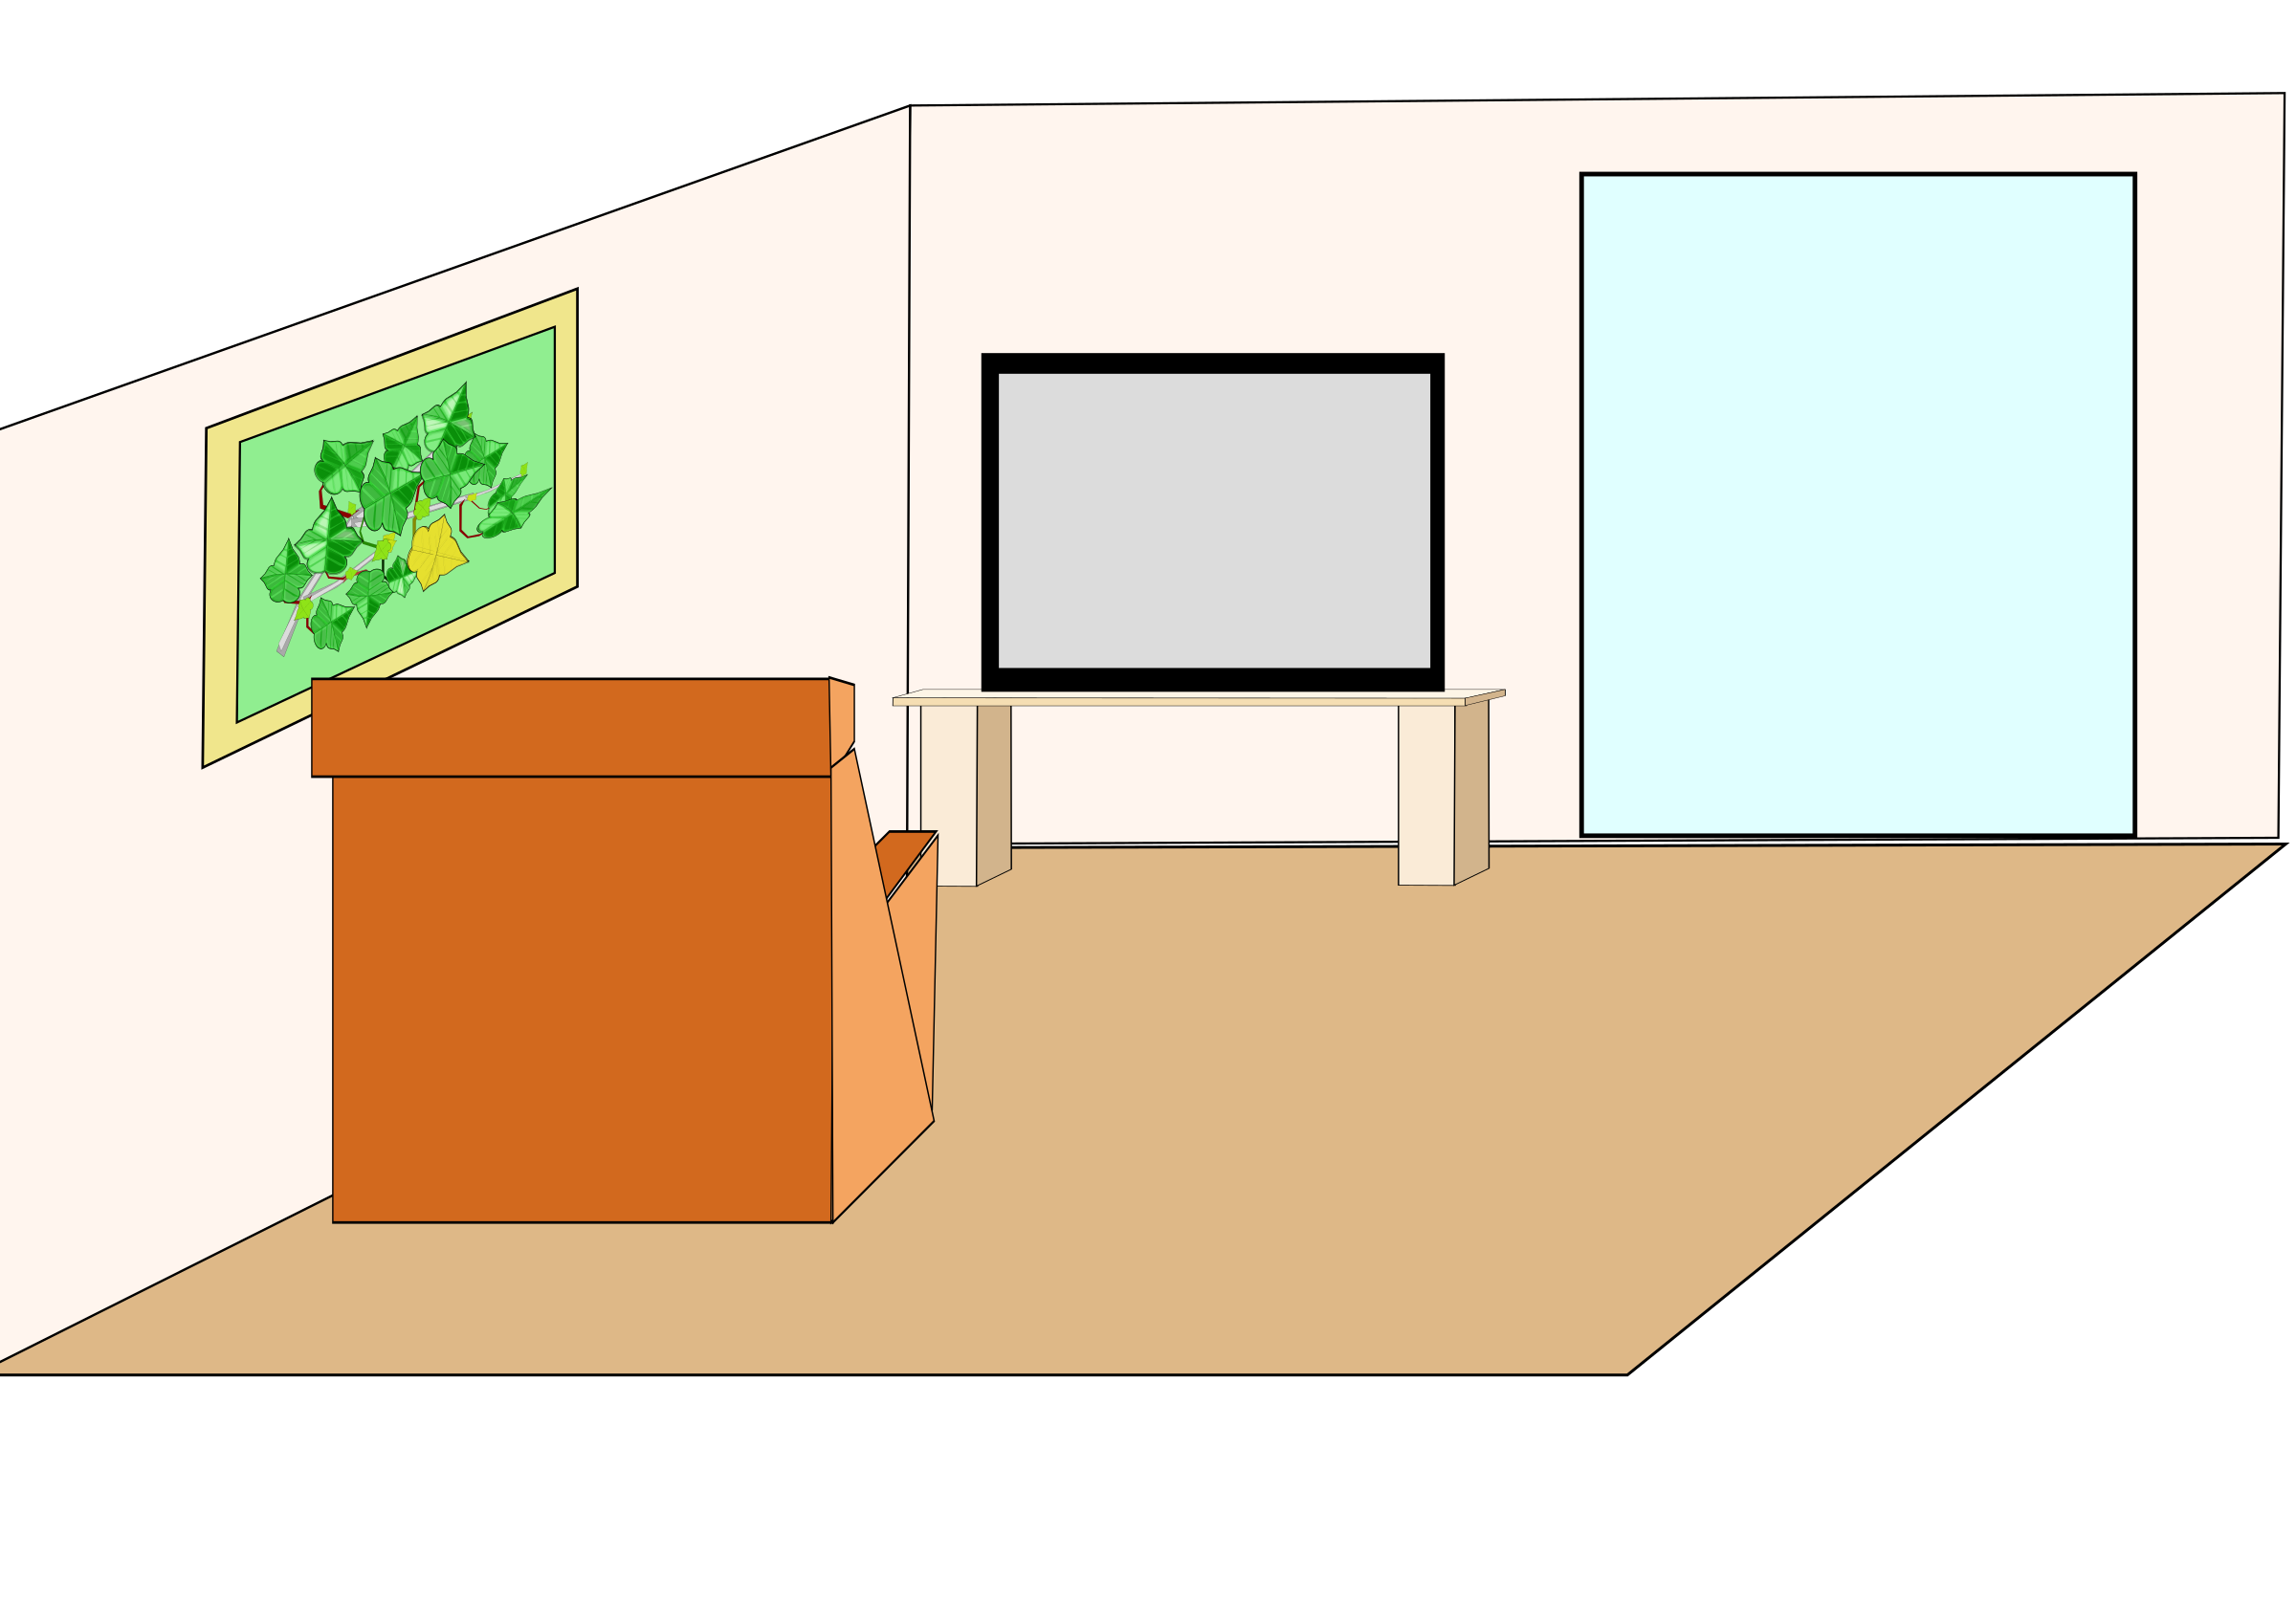 House Interior Clipart at GetDrawings.com | Free for personal use ... picture freeuse library